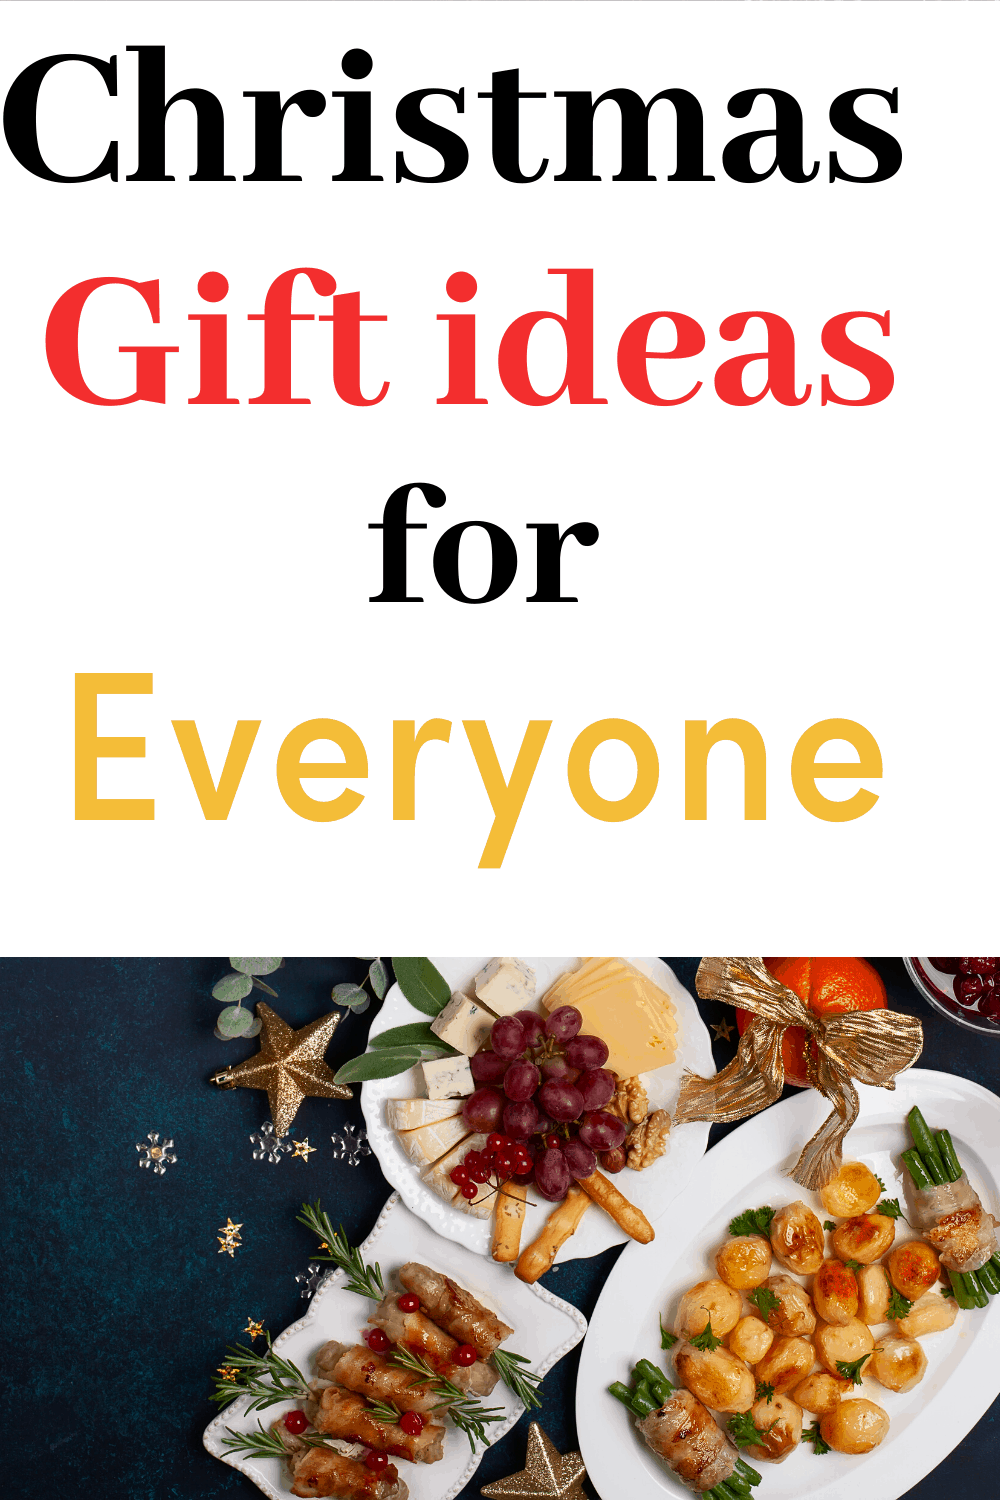 Here is a list of Christmas gift ideas for everyone on your list. Christmas gifts ideas for teenagers //Christmas gifts ideas for family/ Christmas gifts ideas for boyfriend/ Christmas gifts ideas for friends/Christmas gifts ideas for women/Christmas gifts ideas for kids/ #Christmas #Holiday #Xmas #Gifts #Christmasgifts #giftguide #giftideas #holidays